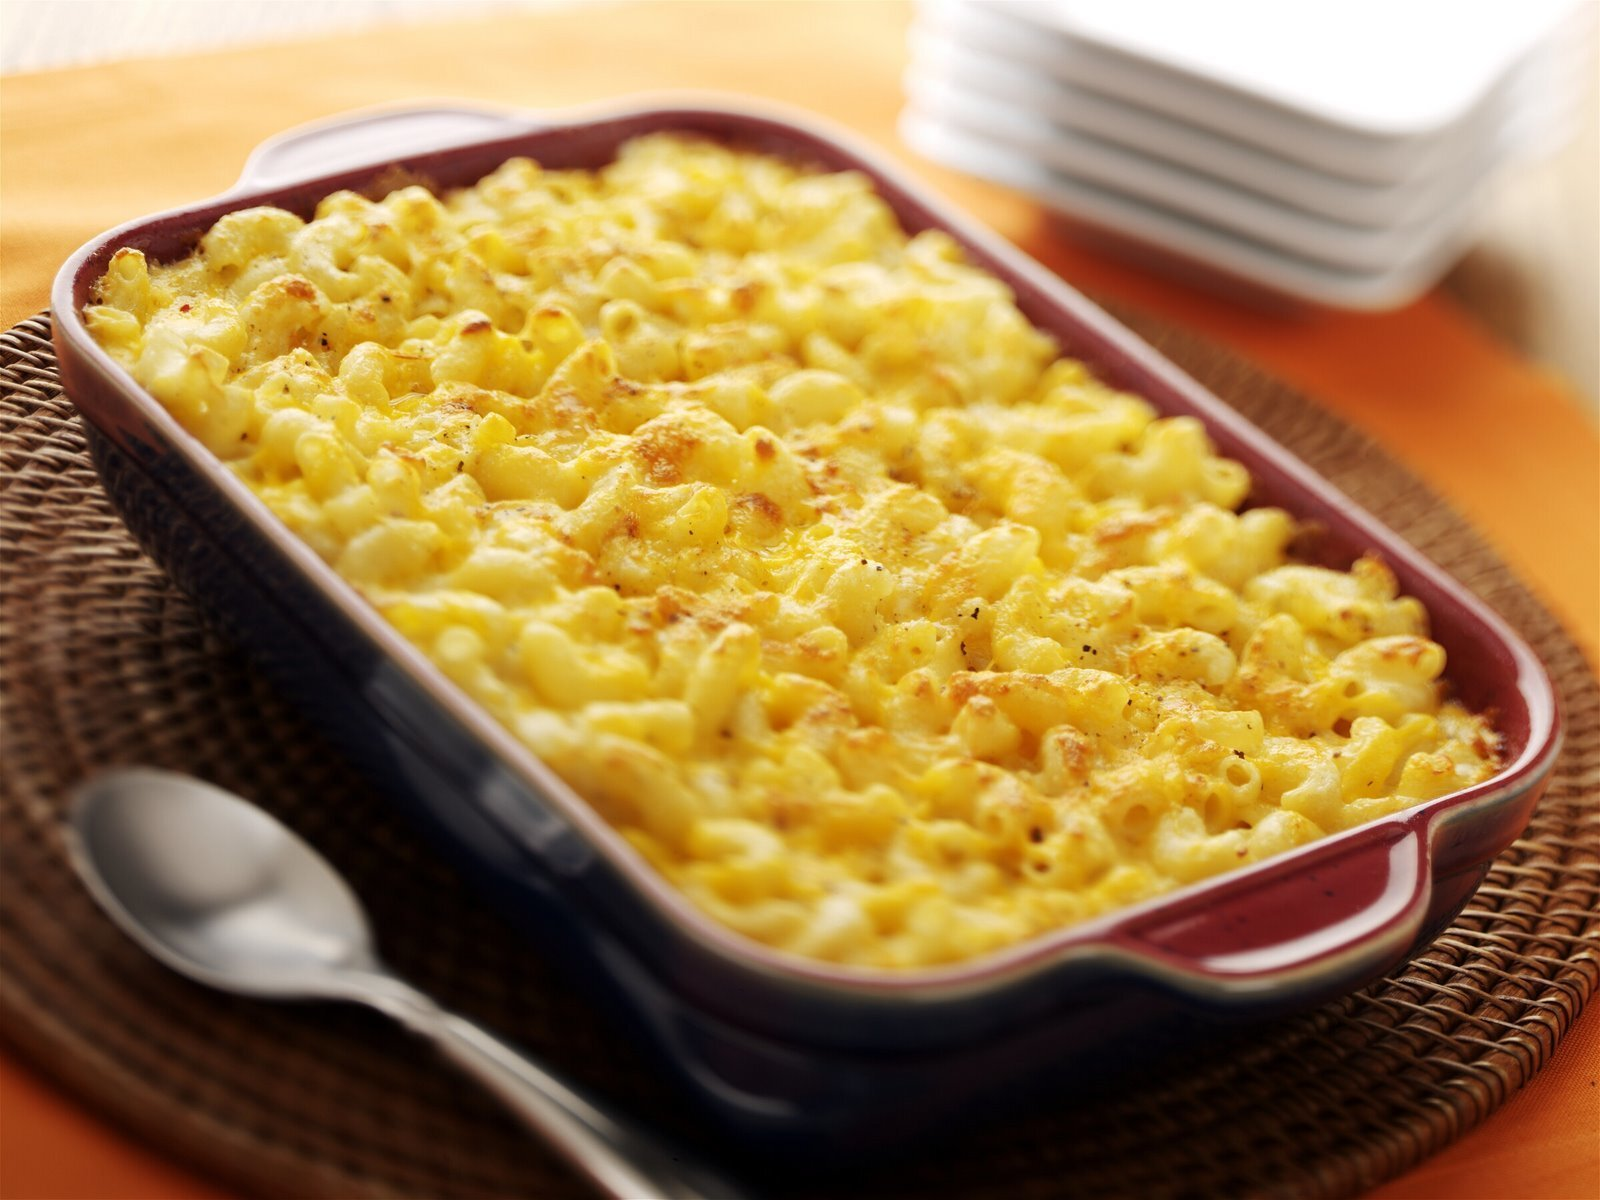 RECIPE: Make Your Own Mac 'n Cheese – JR Style!